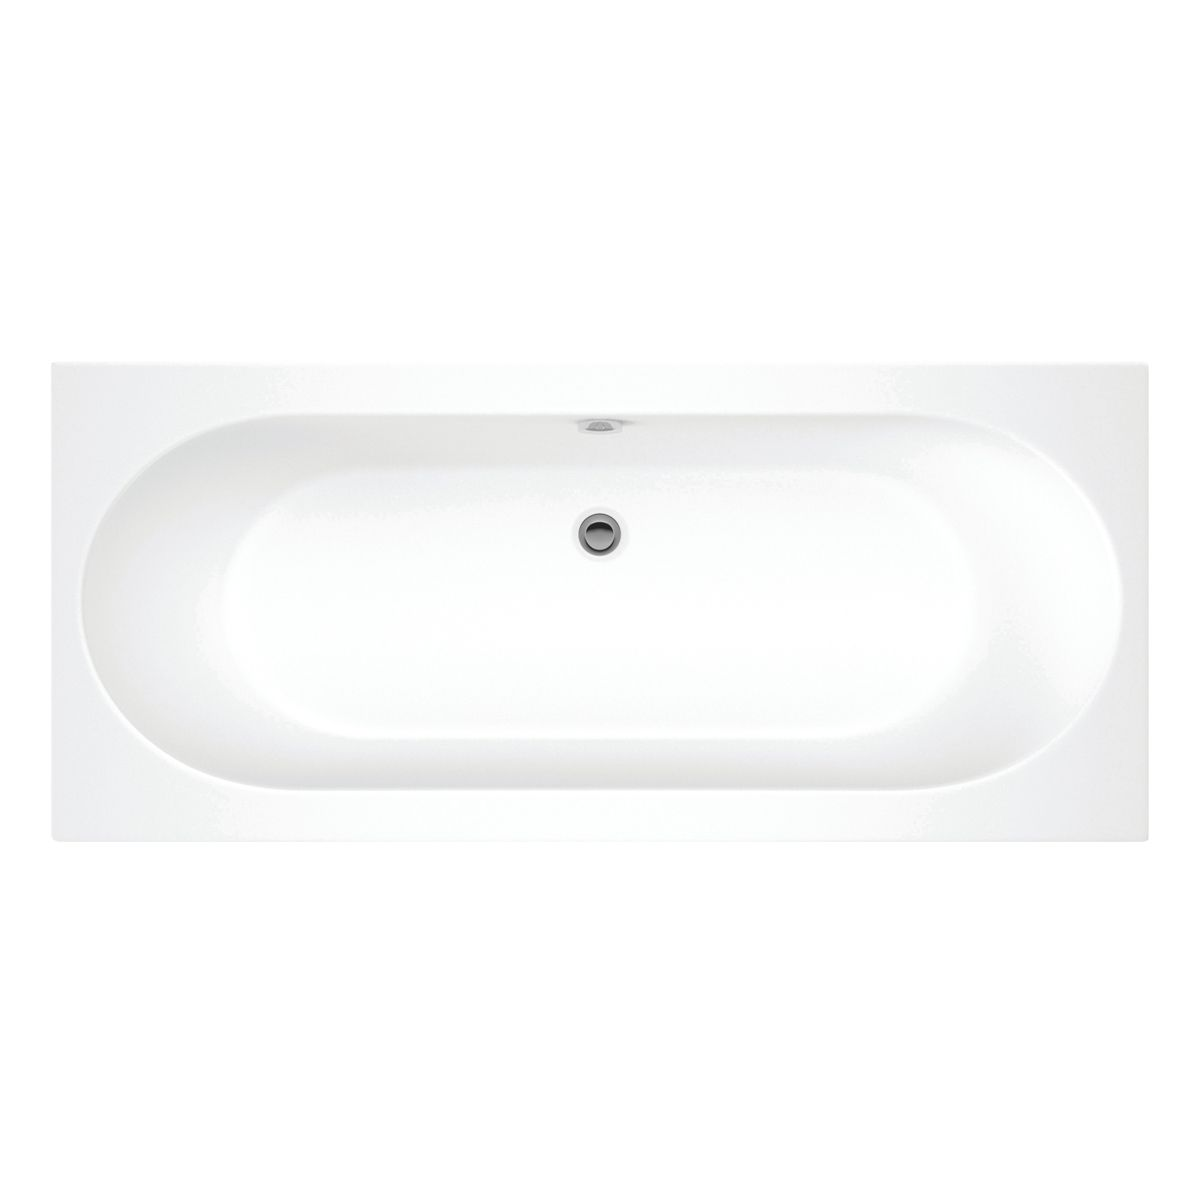 Moods Cascade Supercast Double Ended Whirlpool Bath 1800mm